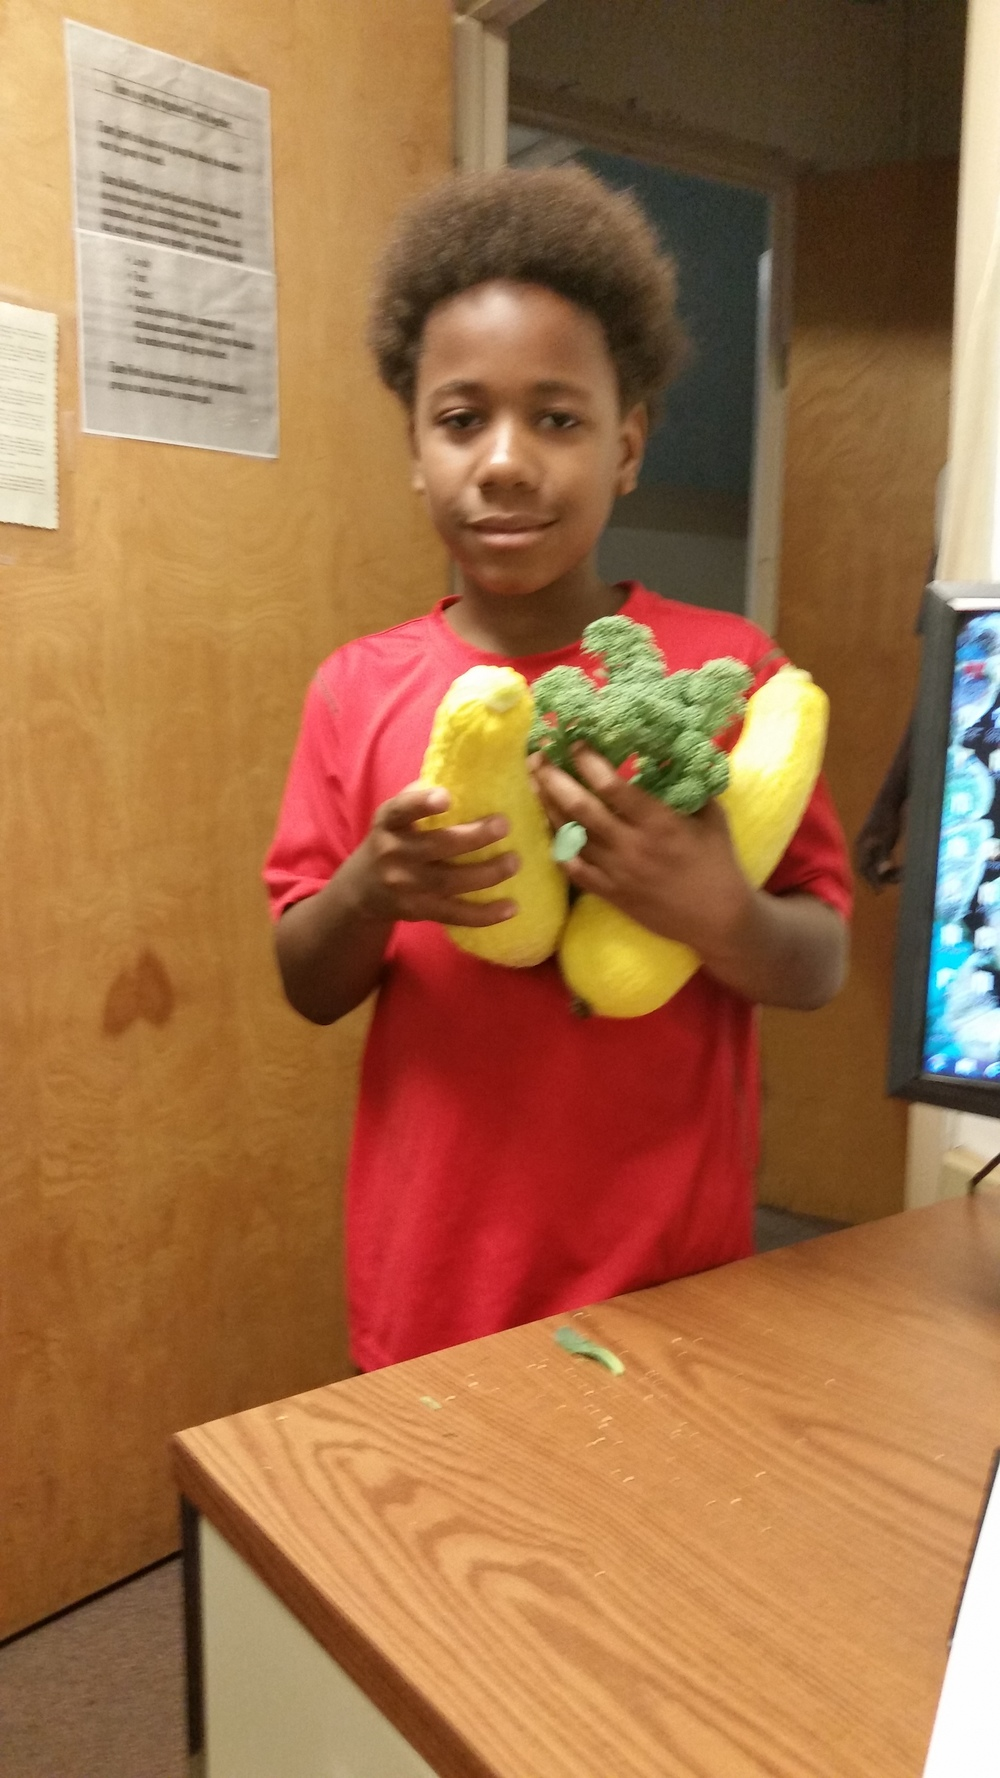 SUMMER 2015: VEGGIES FROM THE DETERMINATION CENTER GARDEN!